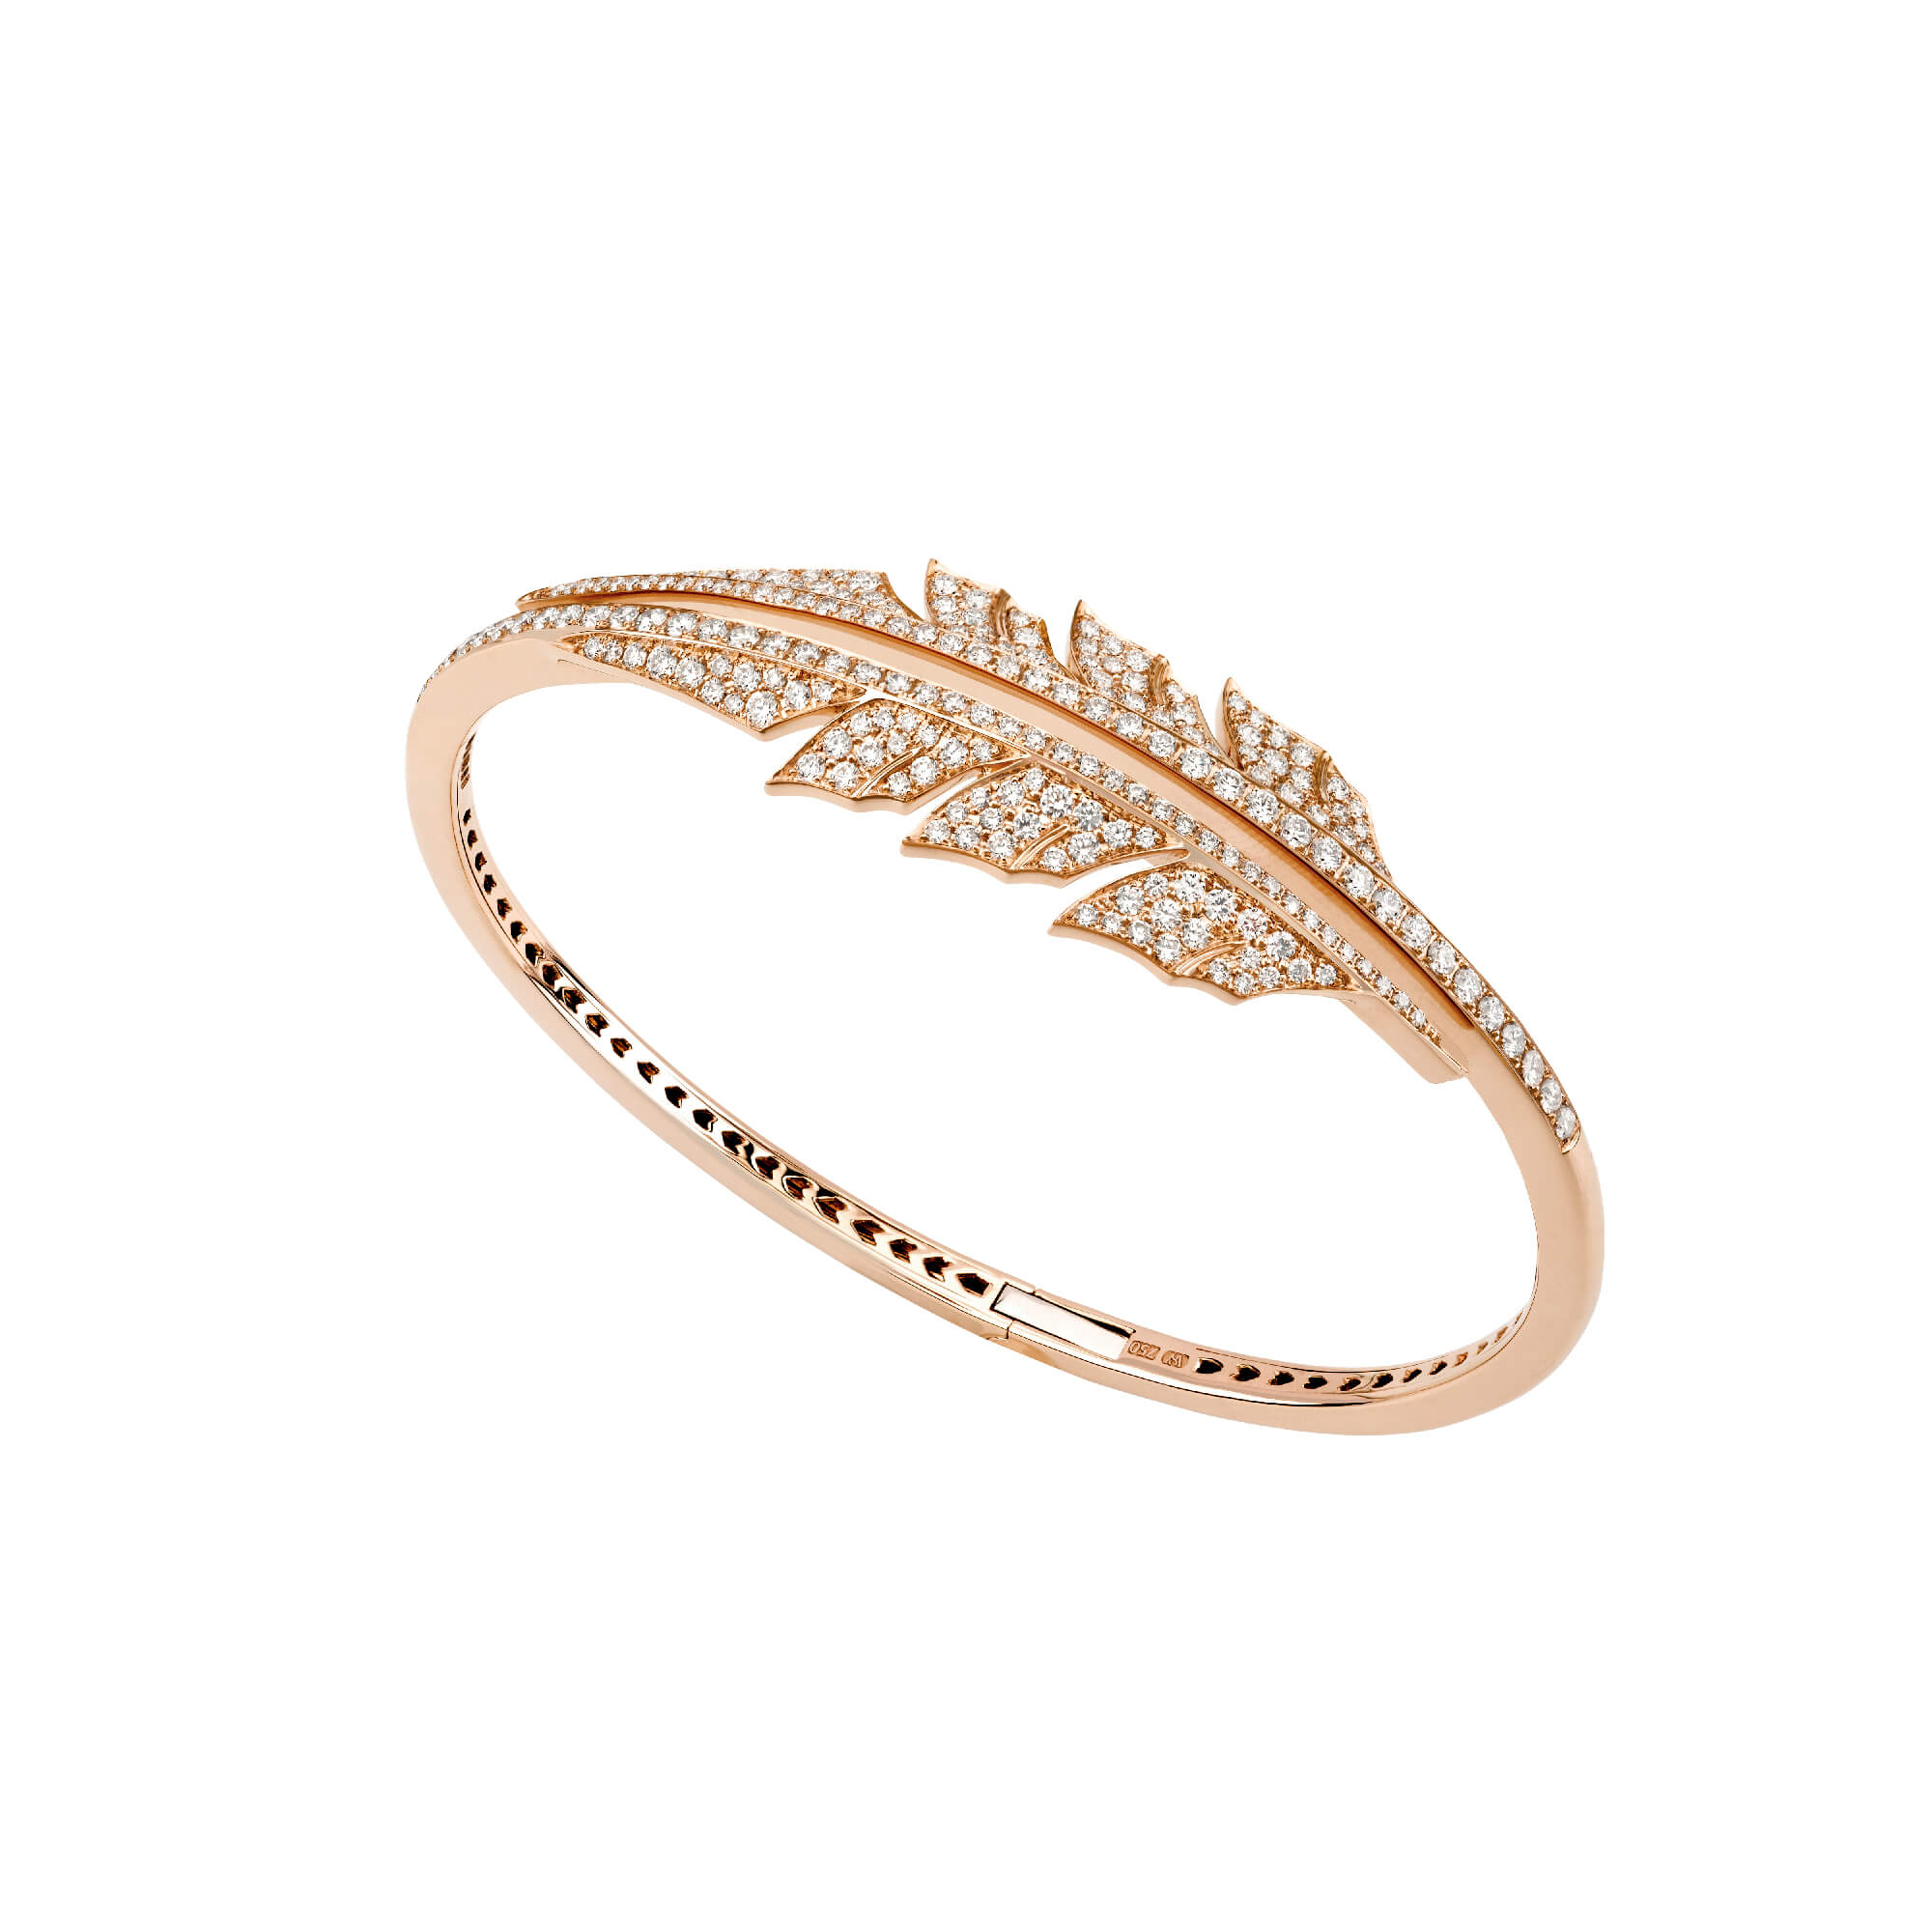 Rose Gold Open Feather Bracelet | Magnipheasant